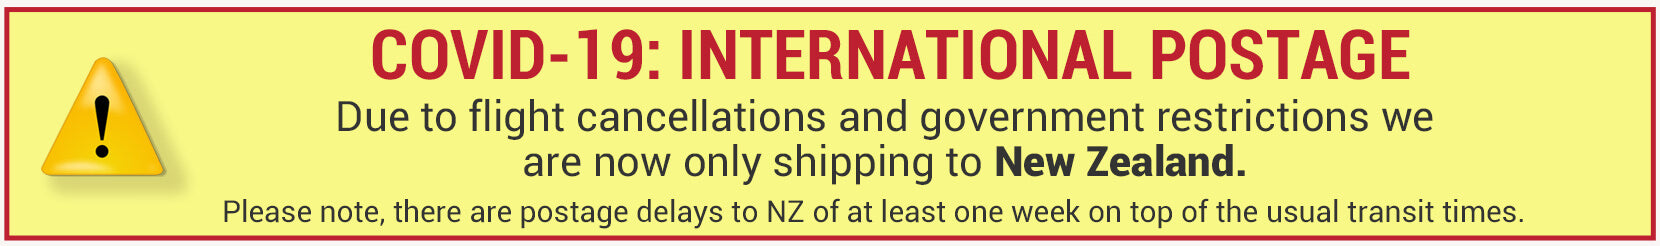 International postage suspended excluding New Zealand